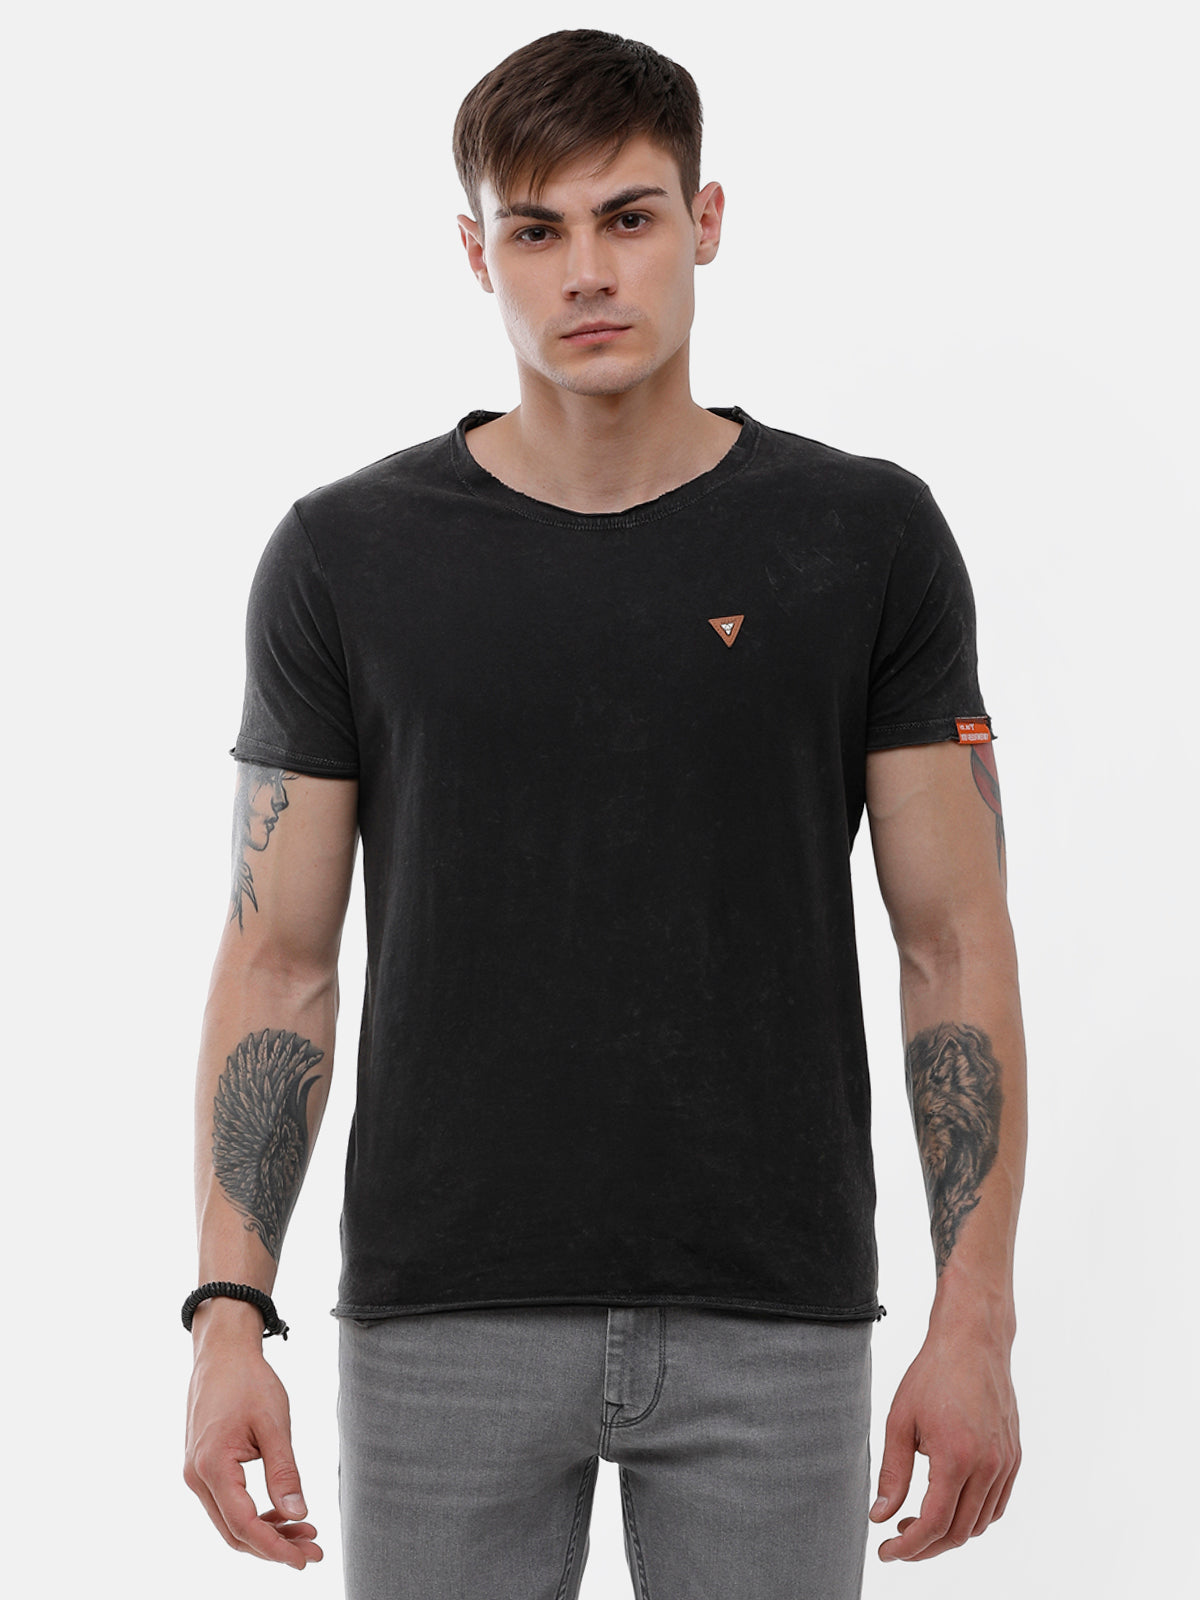 Men's Black half sleeve T-shirt with logo patch on chest